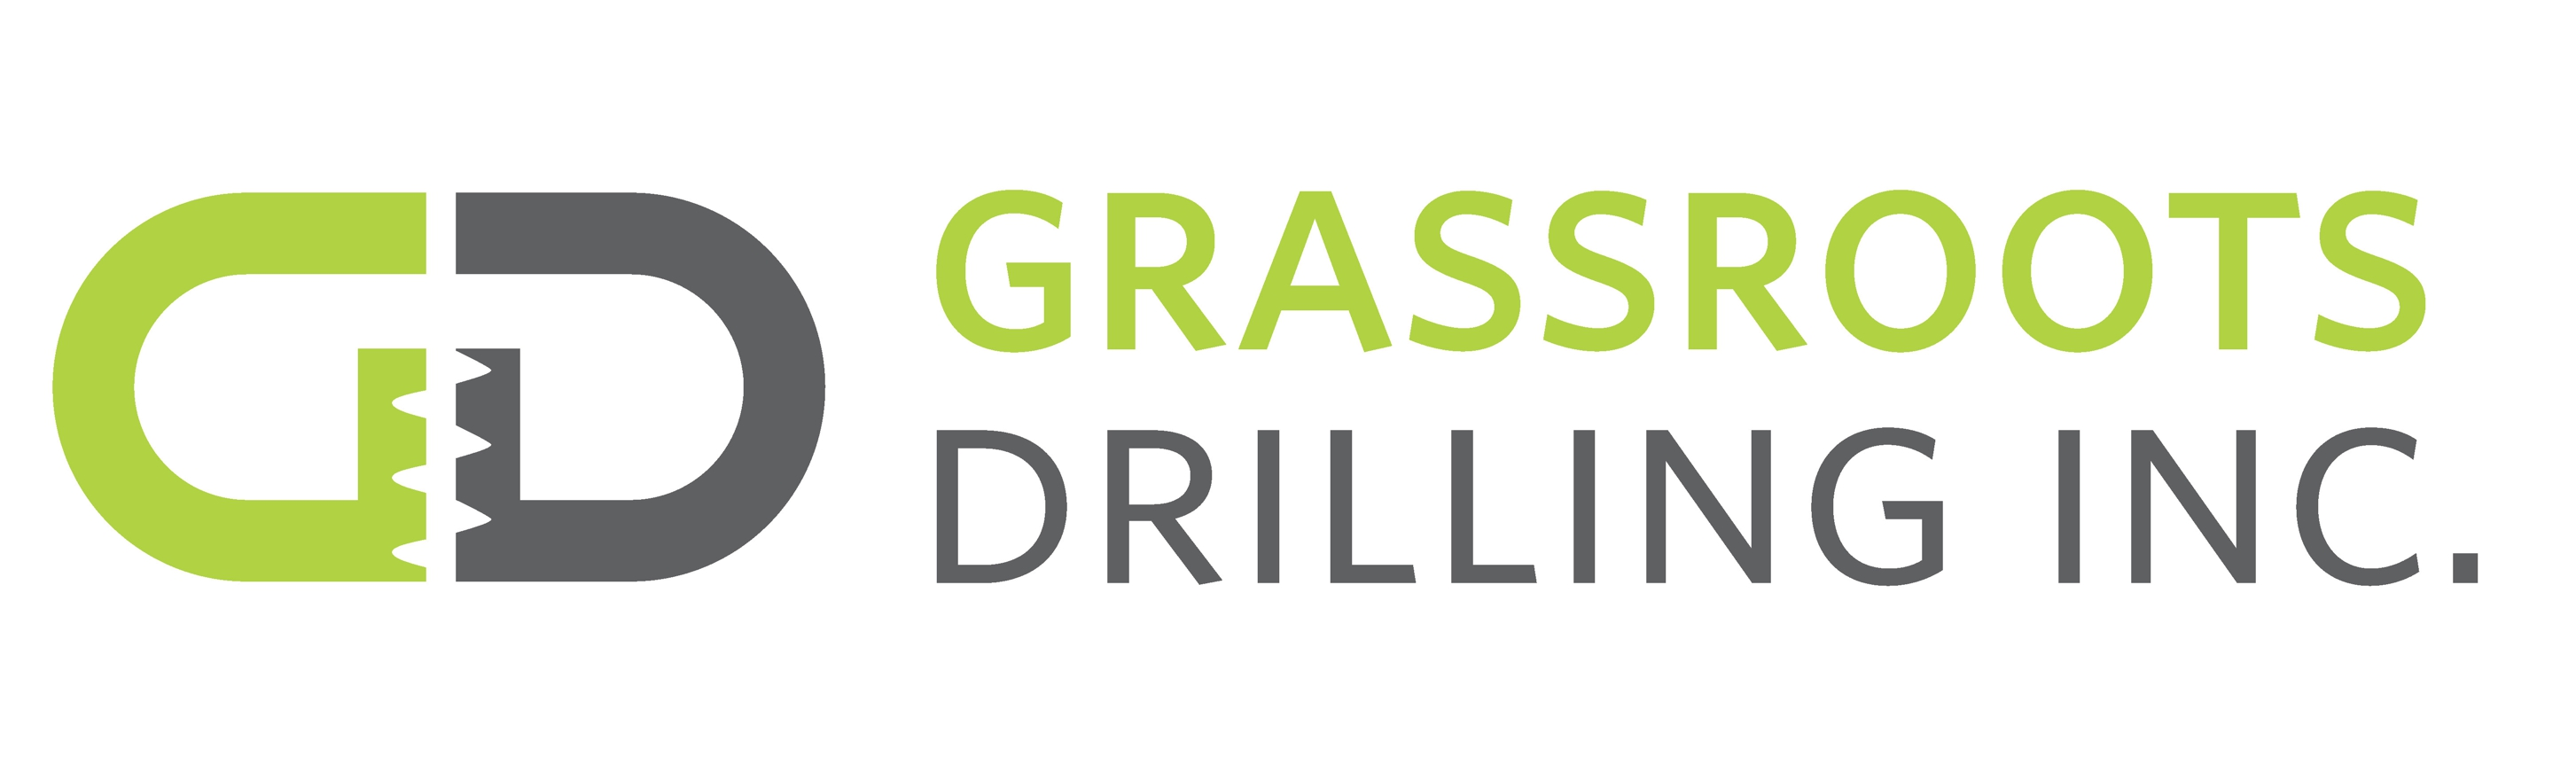 Grassroots Drilling Inc.